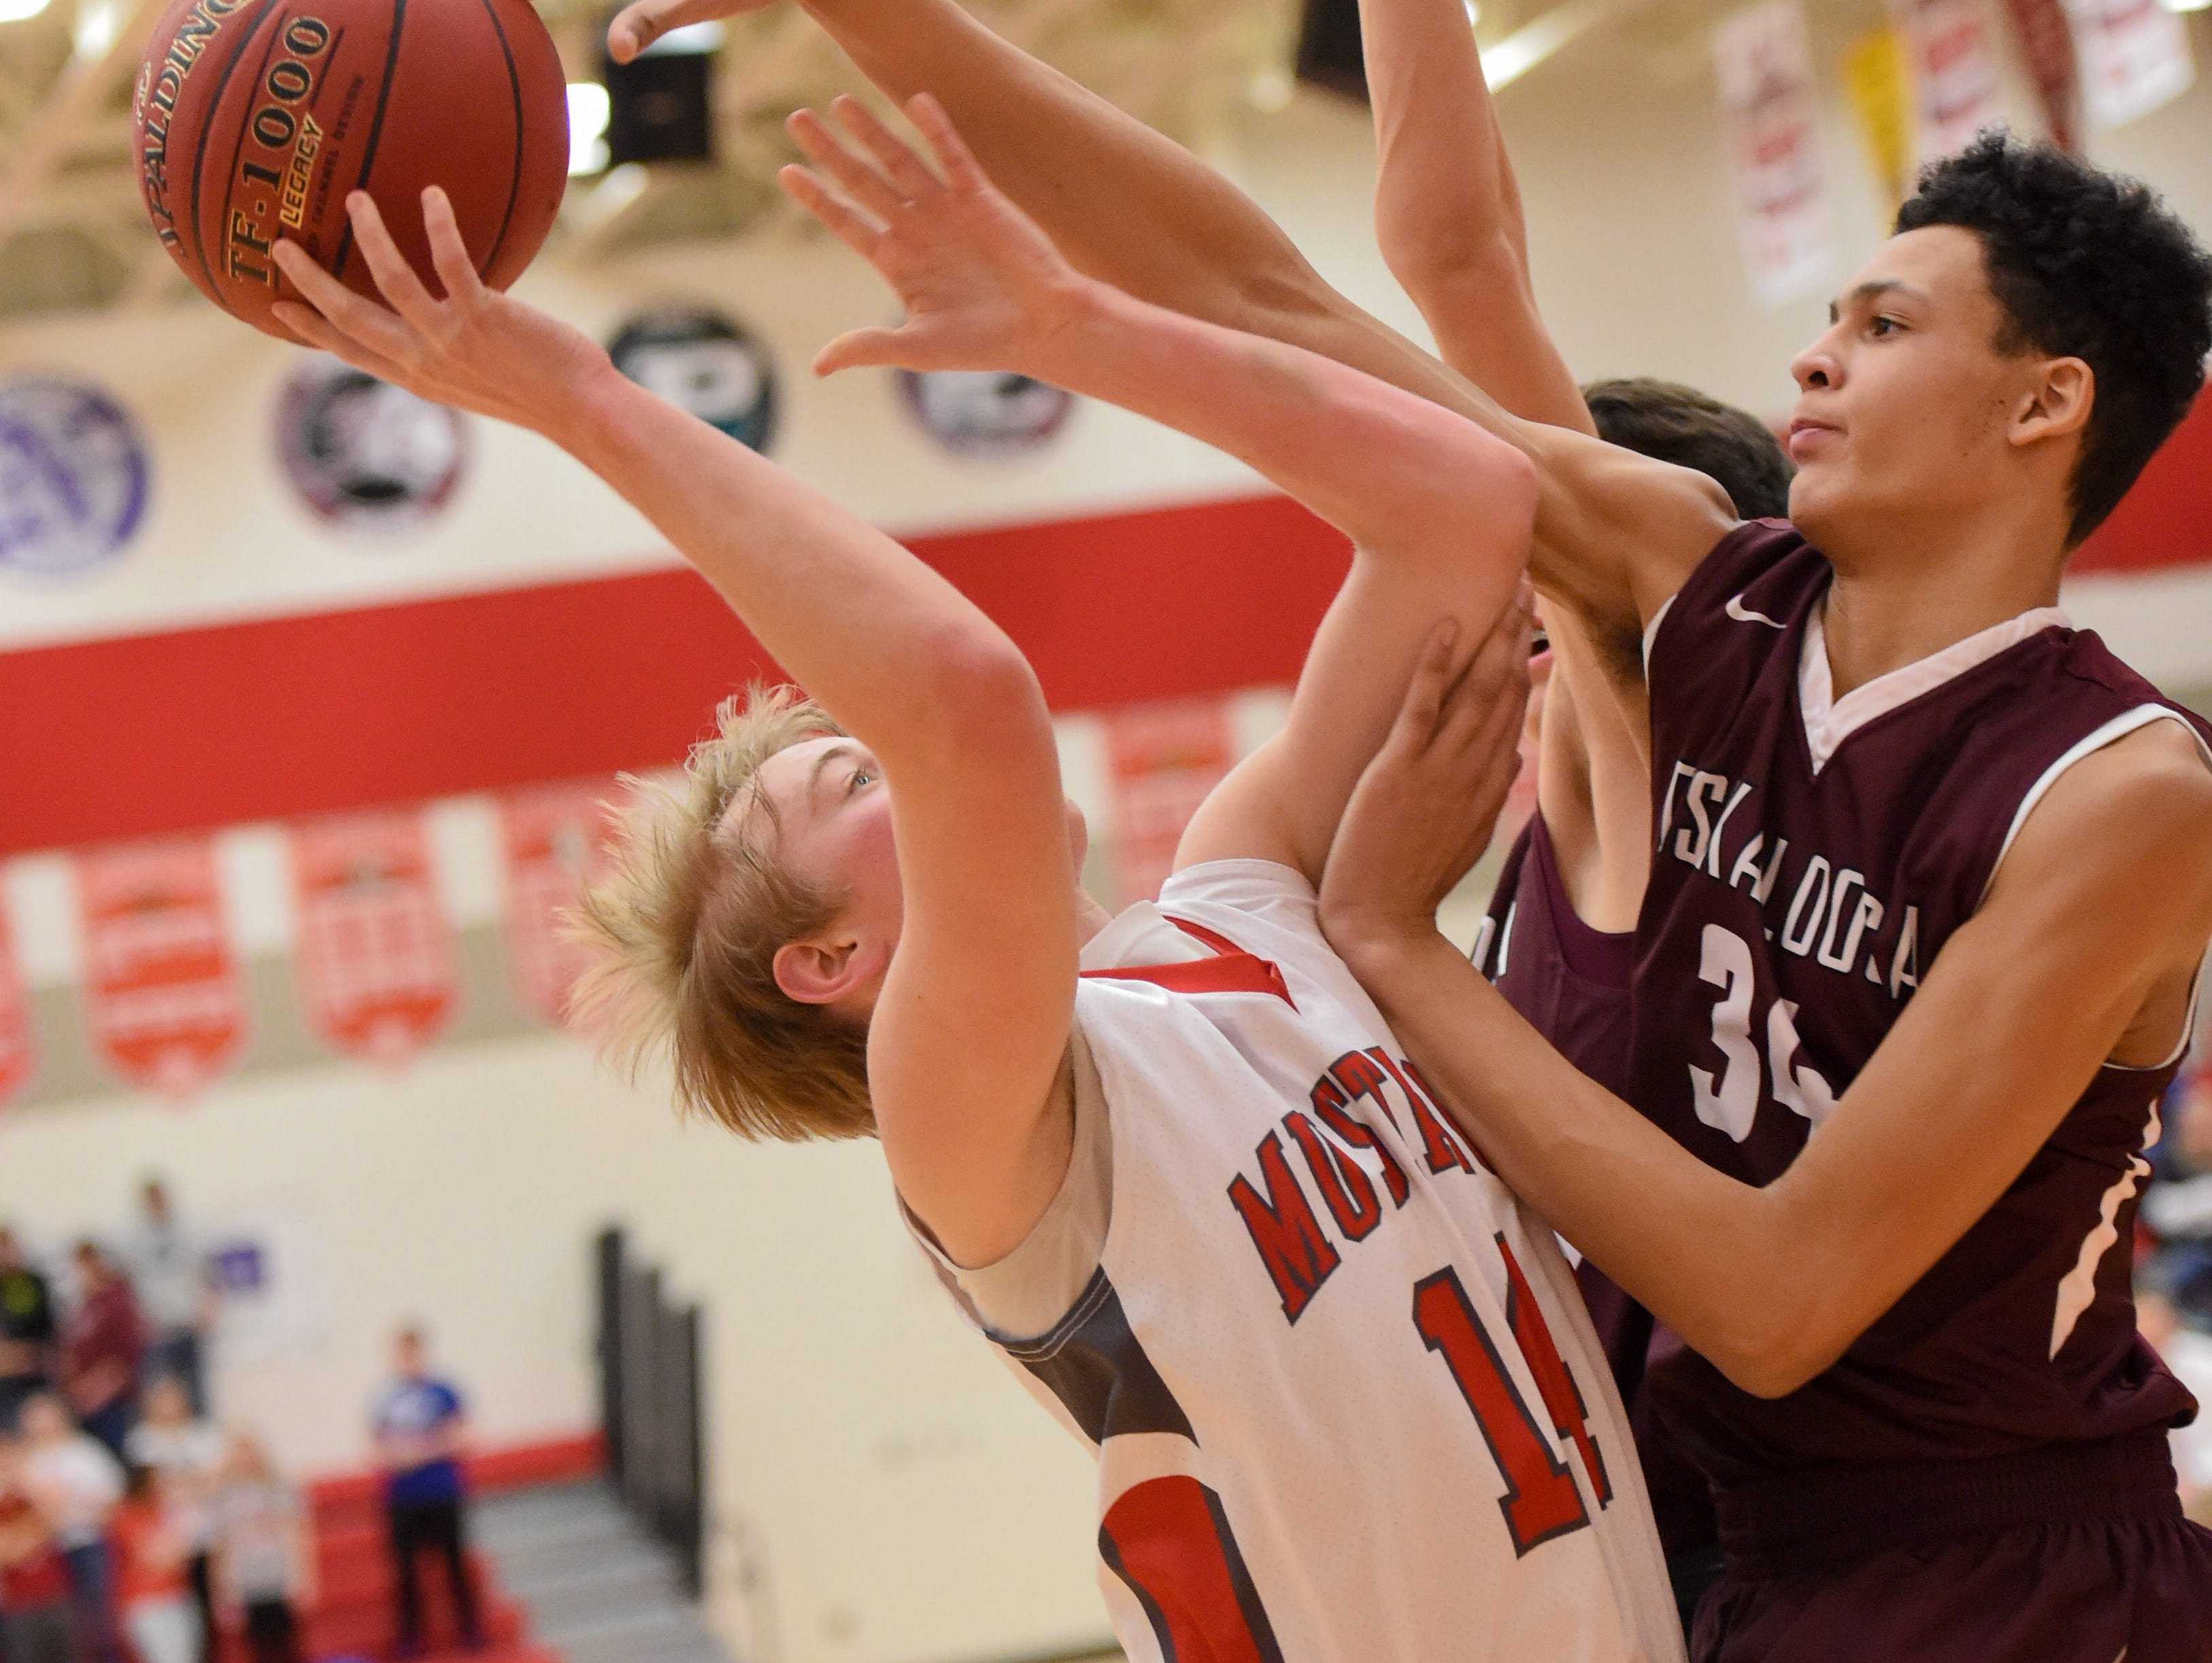 DCG's Jordan Humphreys (14) gets blocked by Oskaloosa's Xavier Foster (34) on Friday, Jan. 27, 2017, during a basketball game between the Dallas Center-Grimes Mustangs and the Oskaloosa Indians at Dallas Center-Grimes High School.